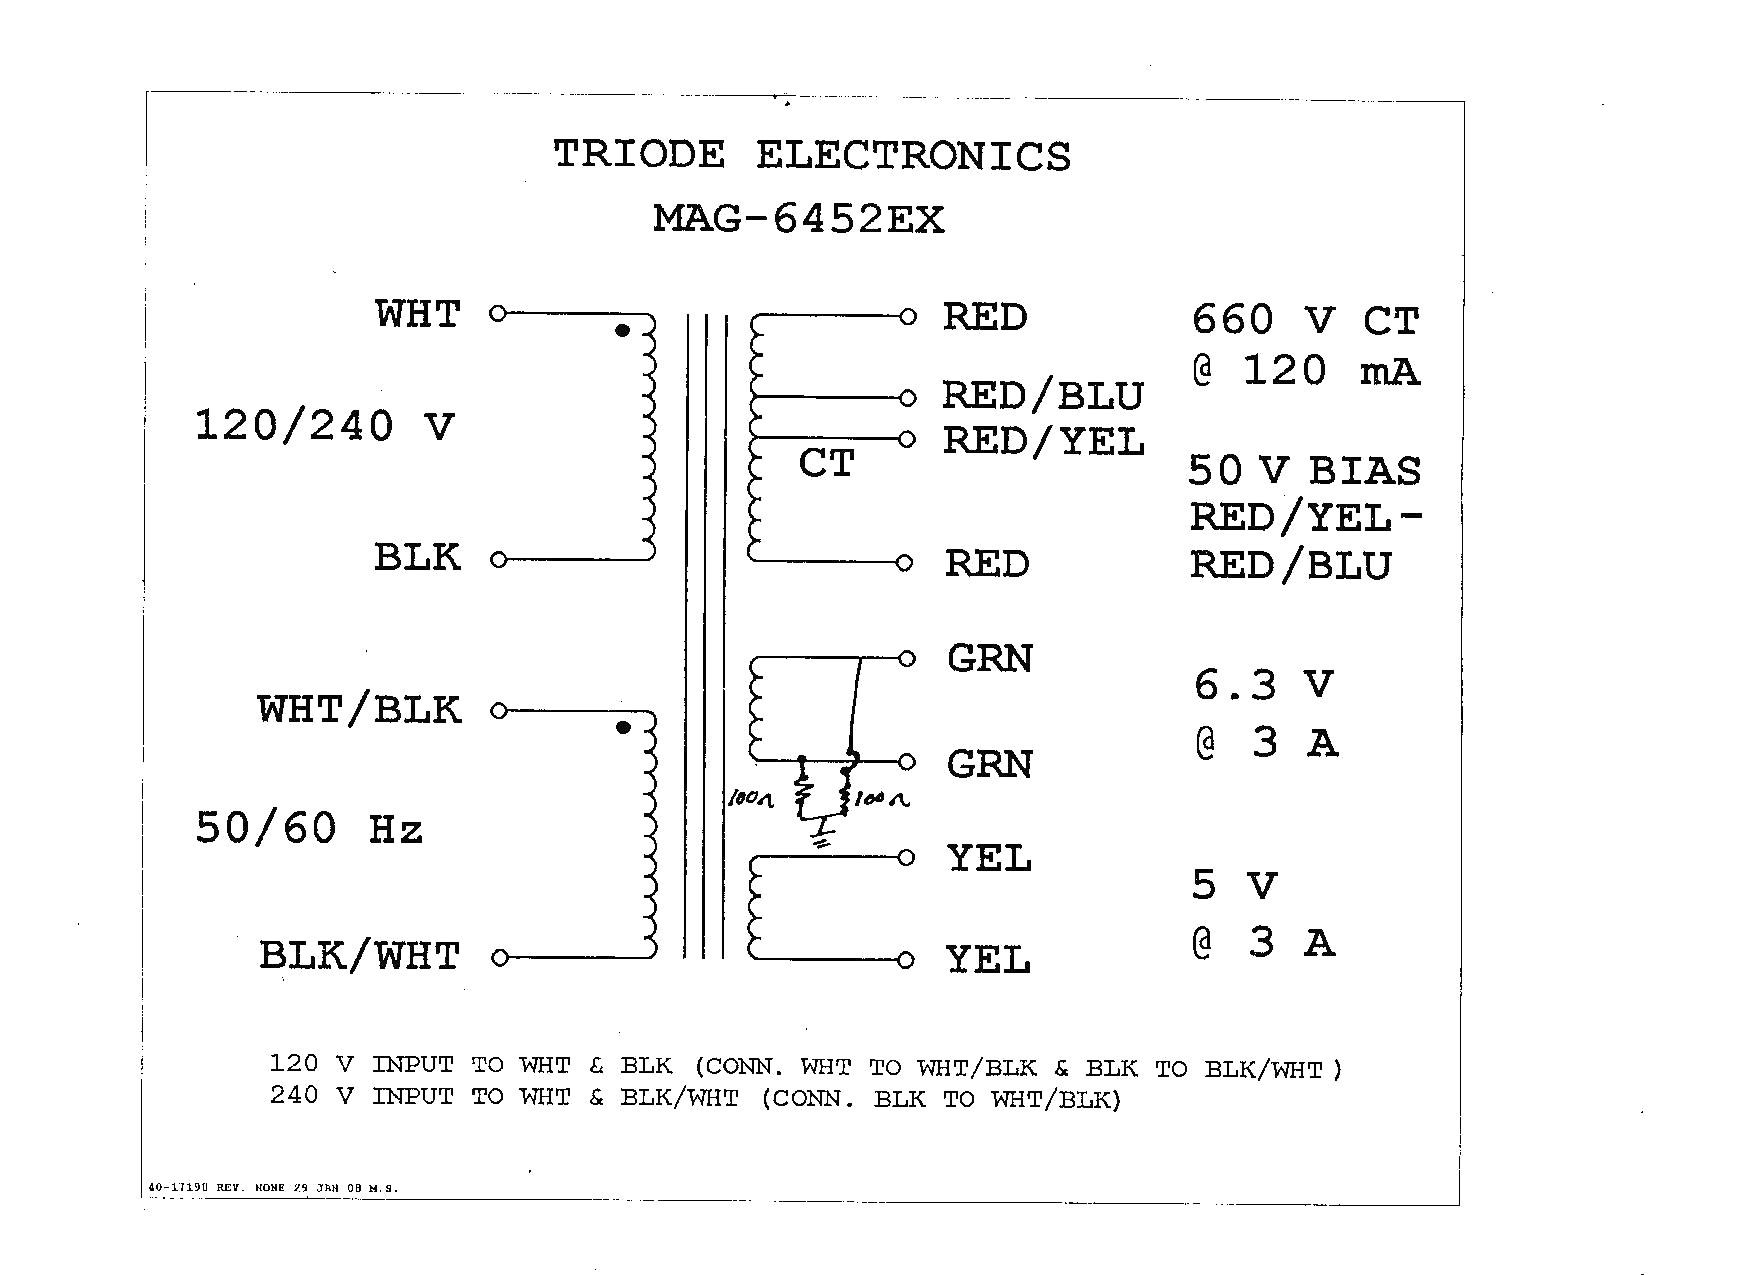 Wiring Diagram 9t51b0130 - Wiring Diagram & Cable Management on